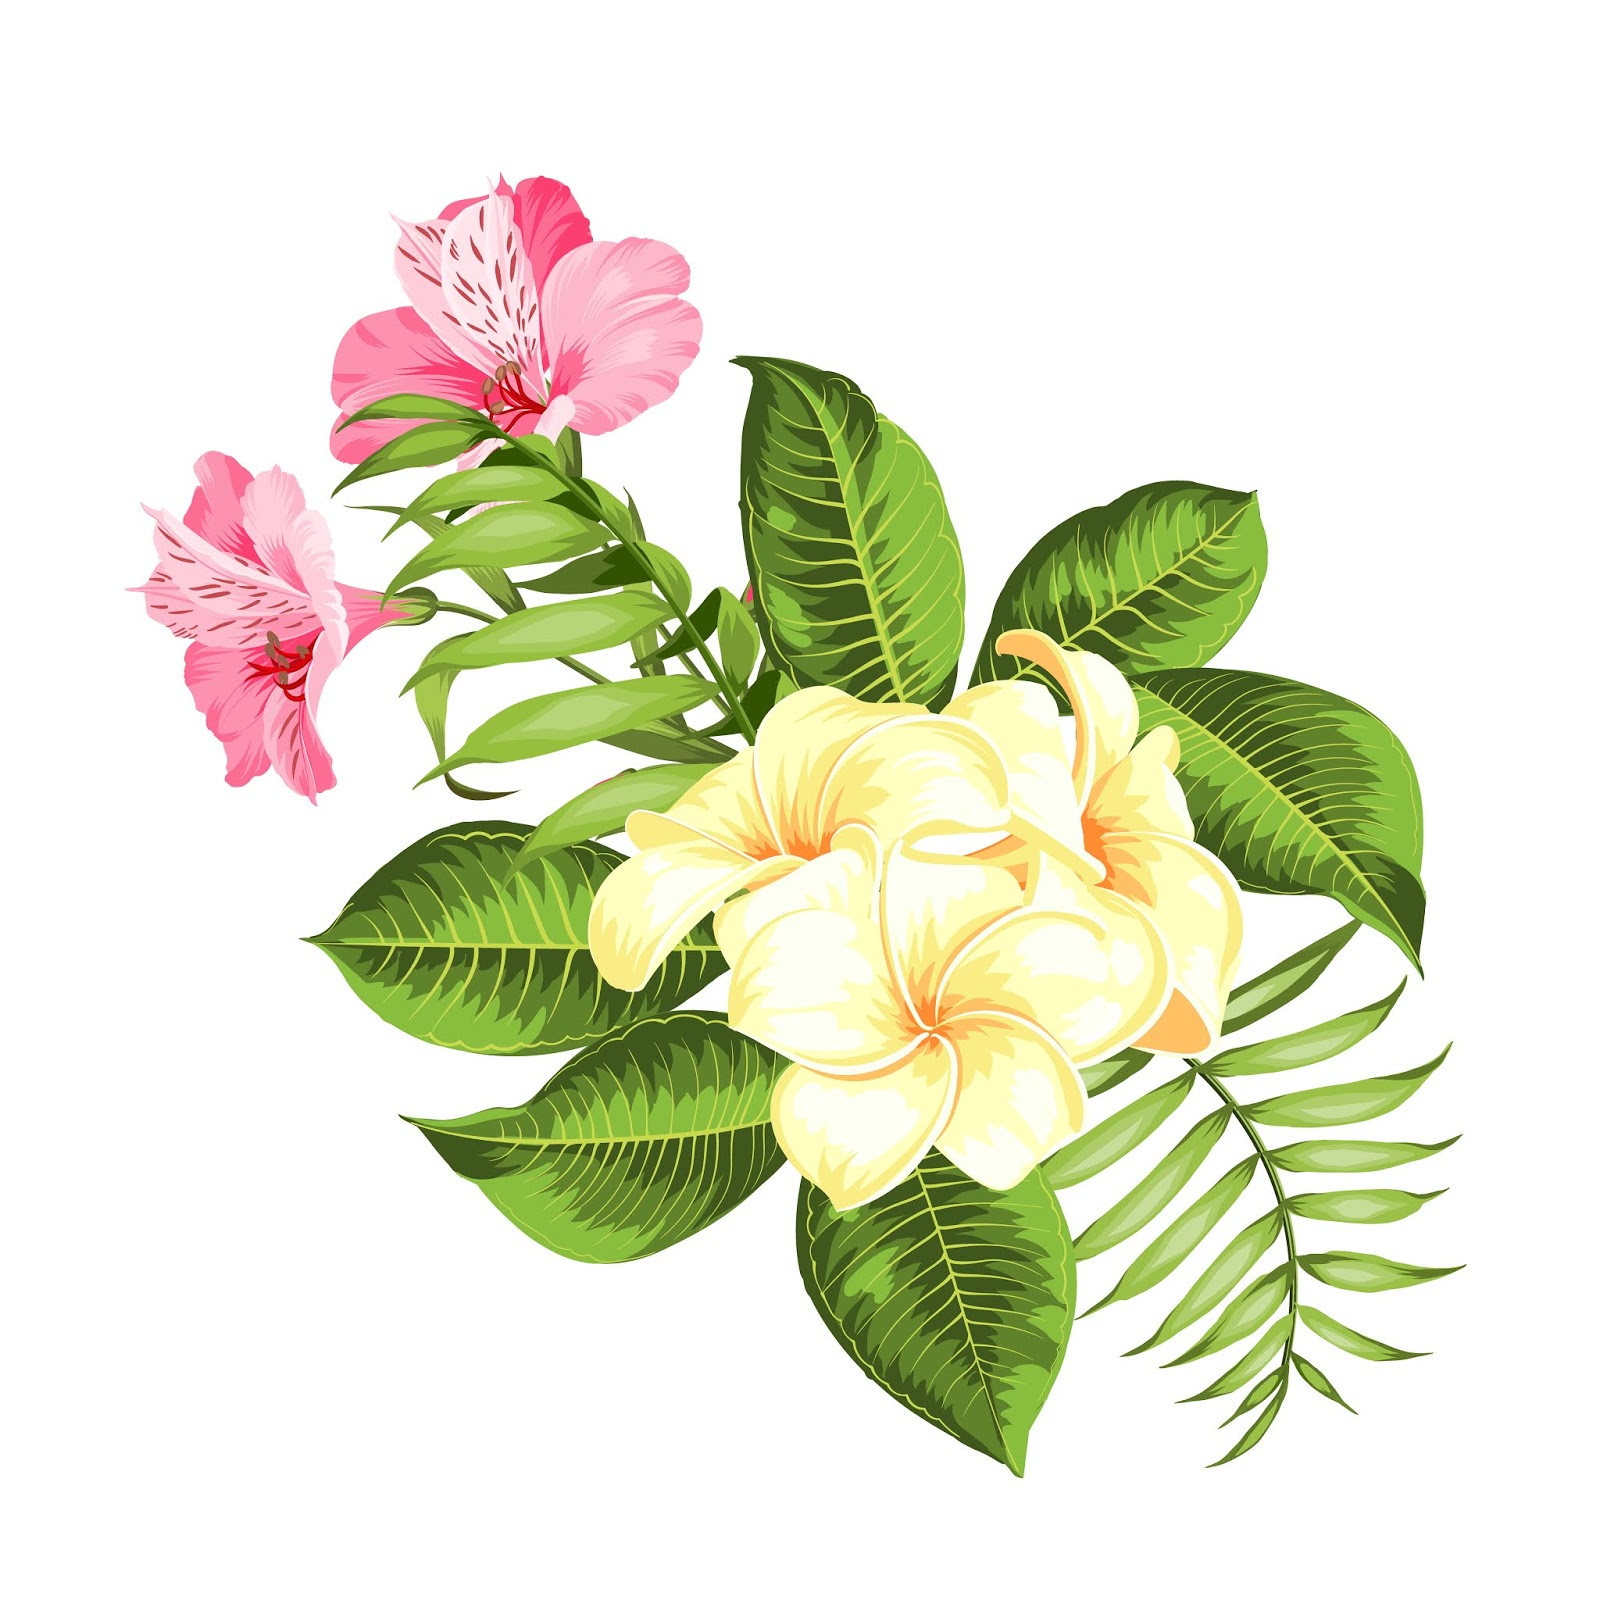 Tropical Flower White Background Free Download Vector CDR, AI, EPS and PNG Formats